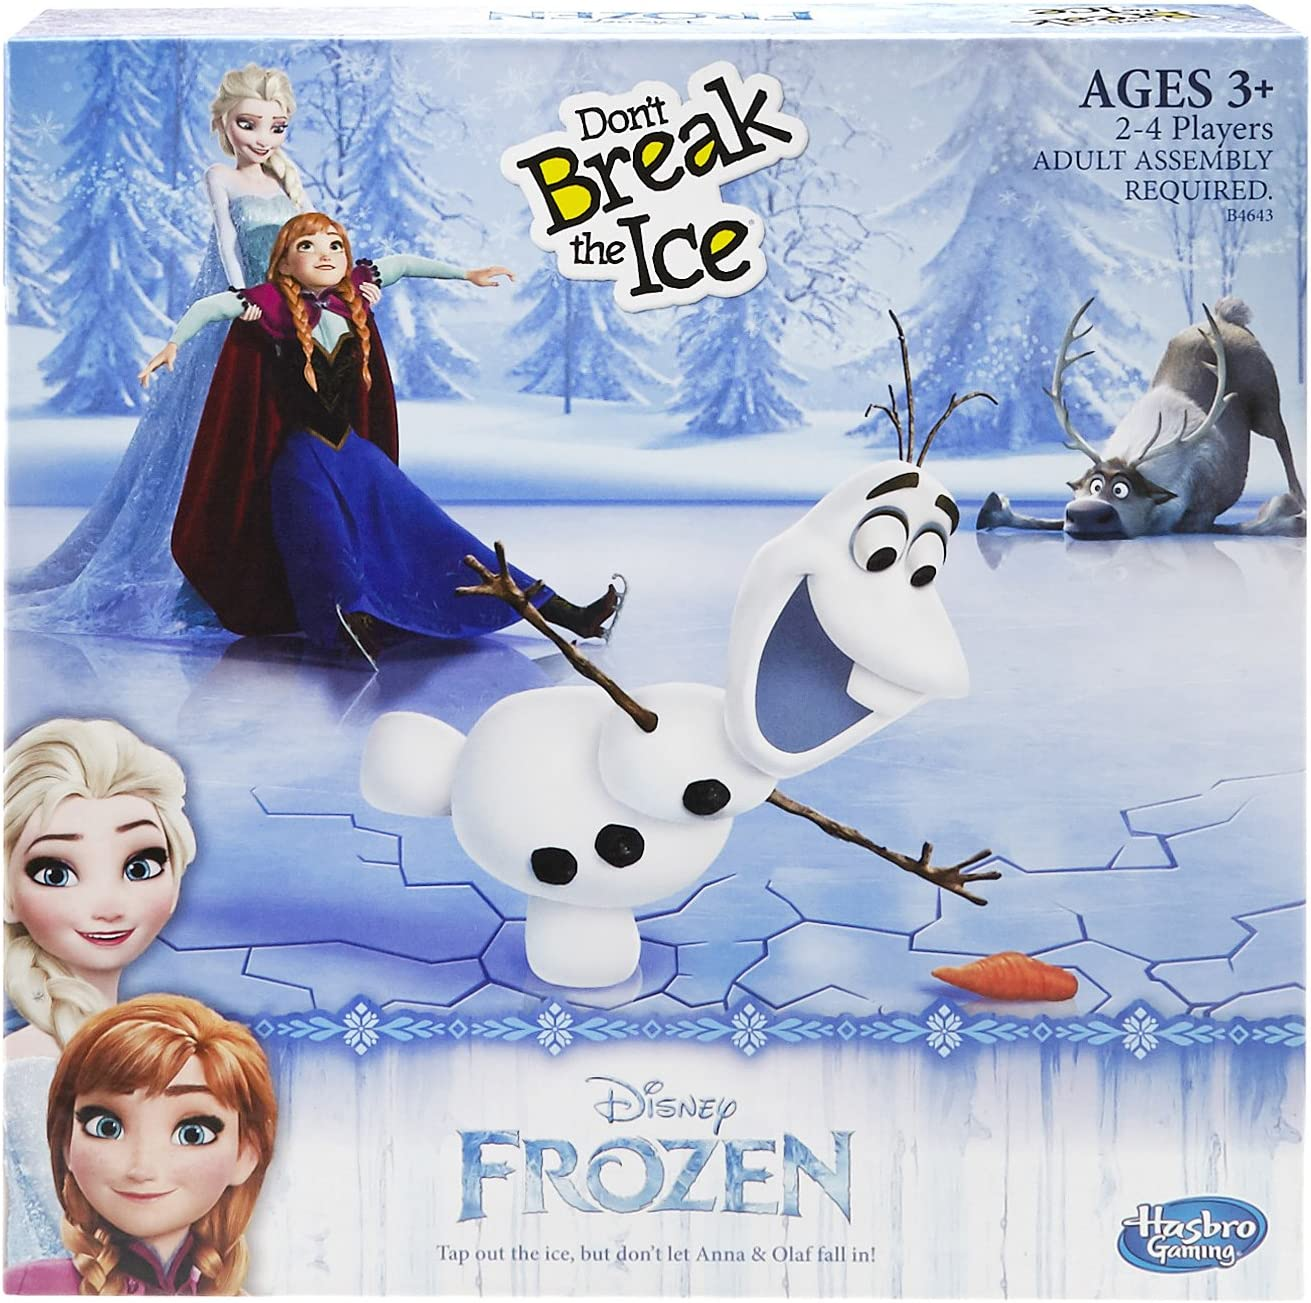 Hasbro Dont Break the Ice: Disney Frozen Edition Game: Amazon.es: Juguetes y juegos